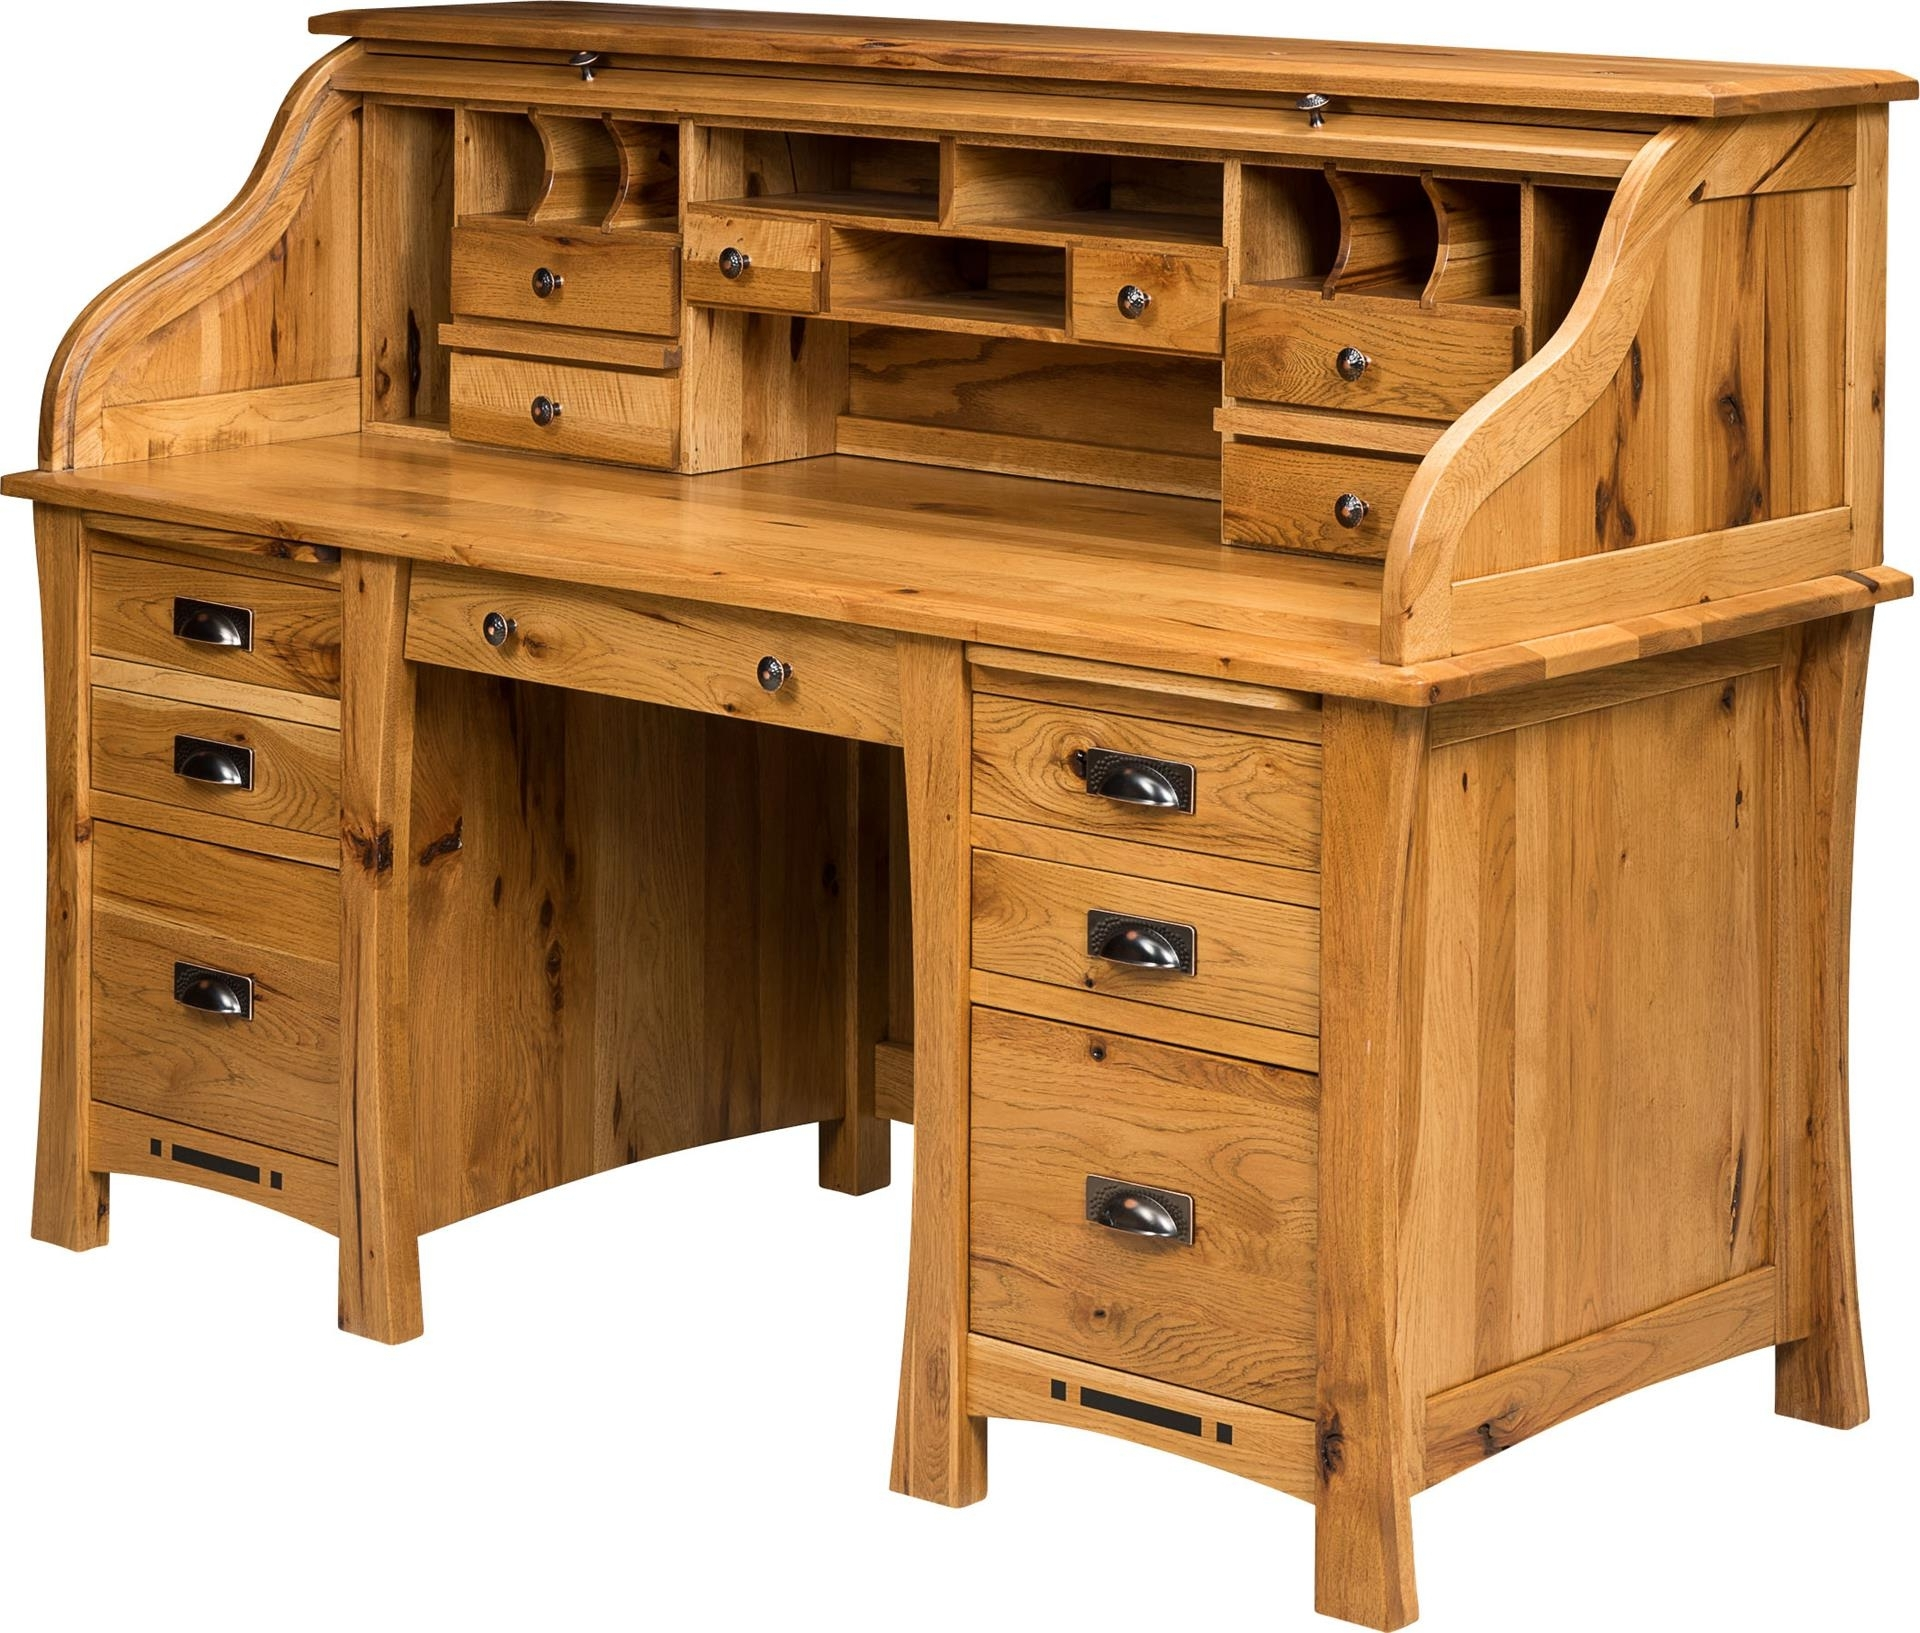 Rolltop Desk, Solid Wood And Throughout Well Known Roll Top Computer Desks (View 14 of 20)